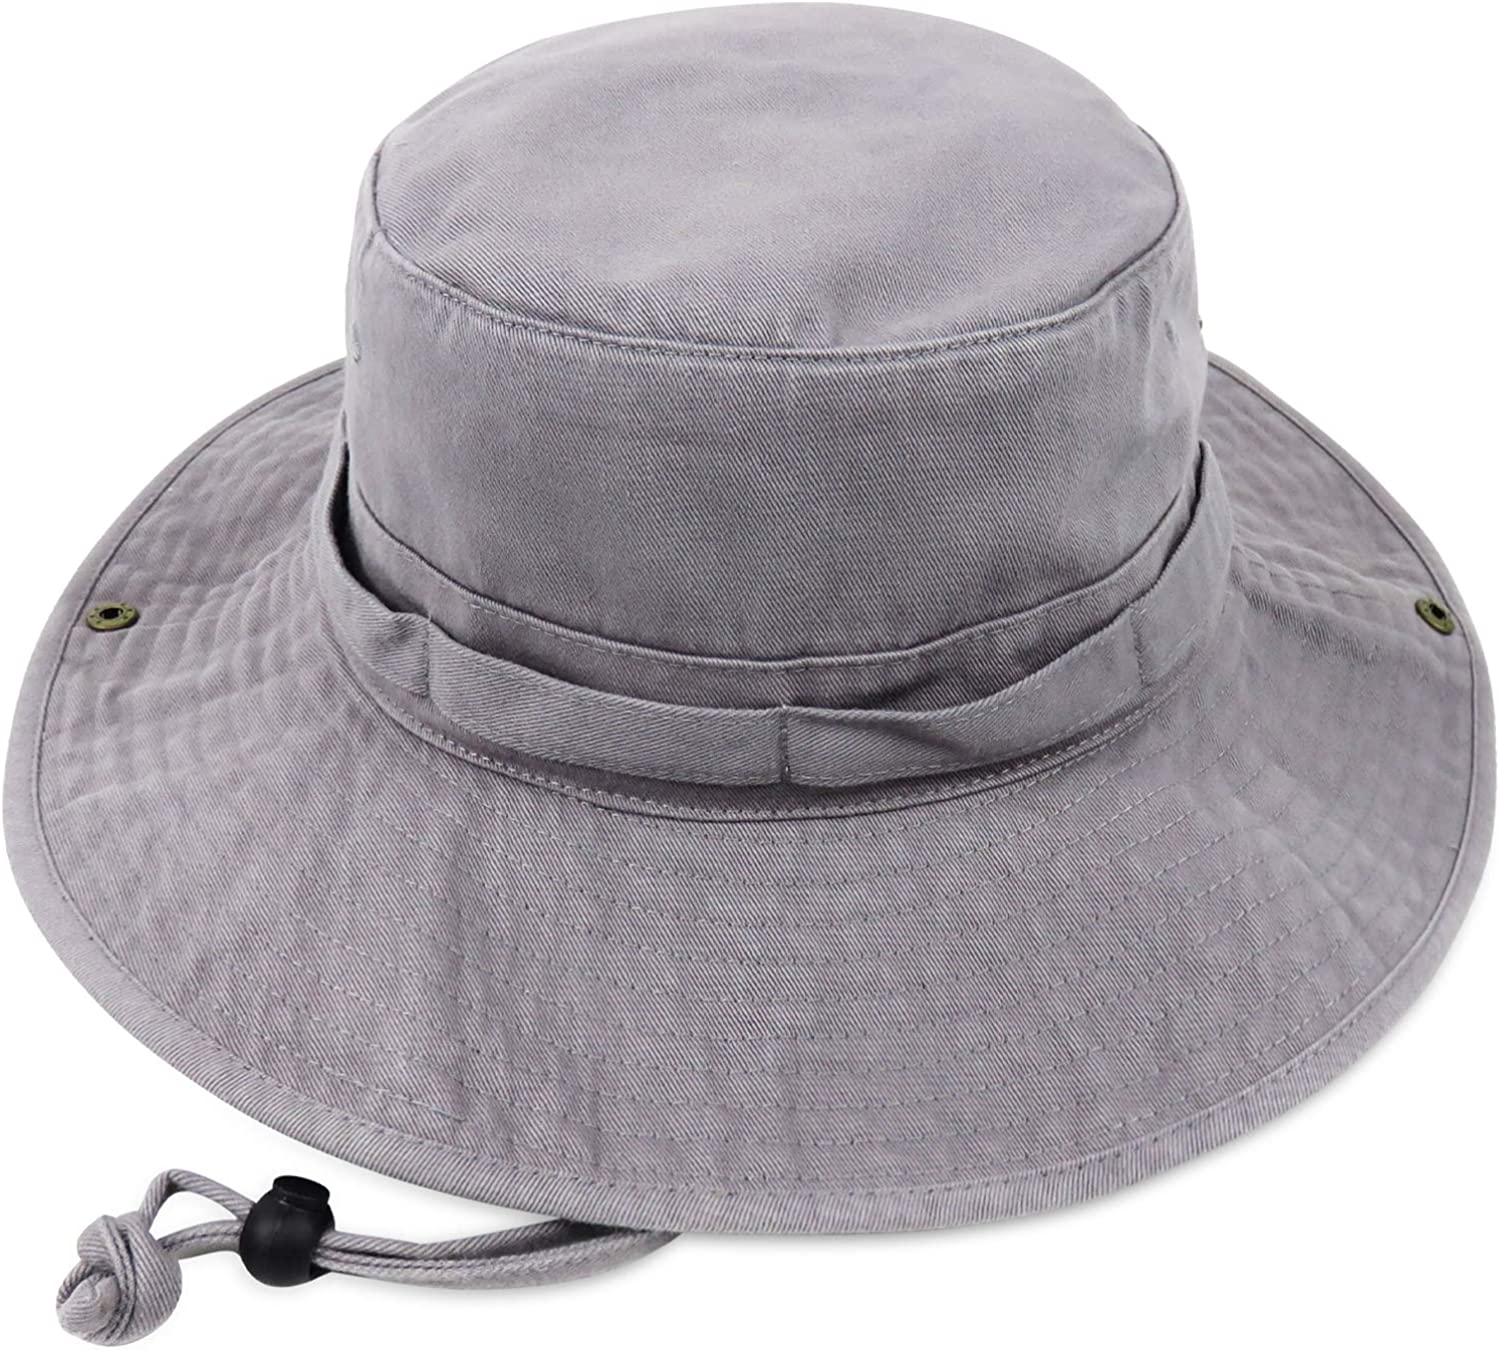 Phaiy Bucket Hat Wide Brim UV Protection Sun Hat Boonie Hats Fishing Hiking Safari Outdoor Hats for Men and Women